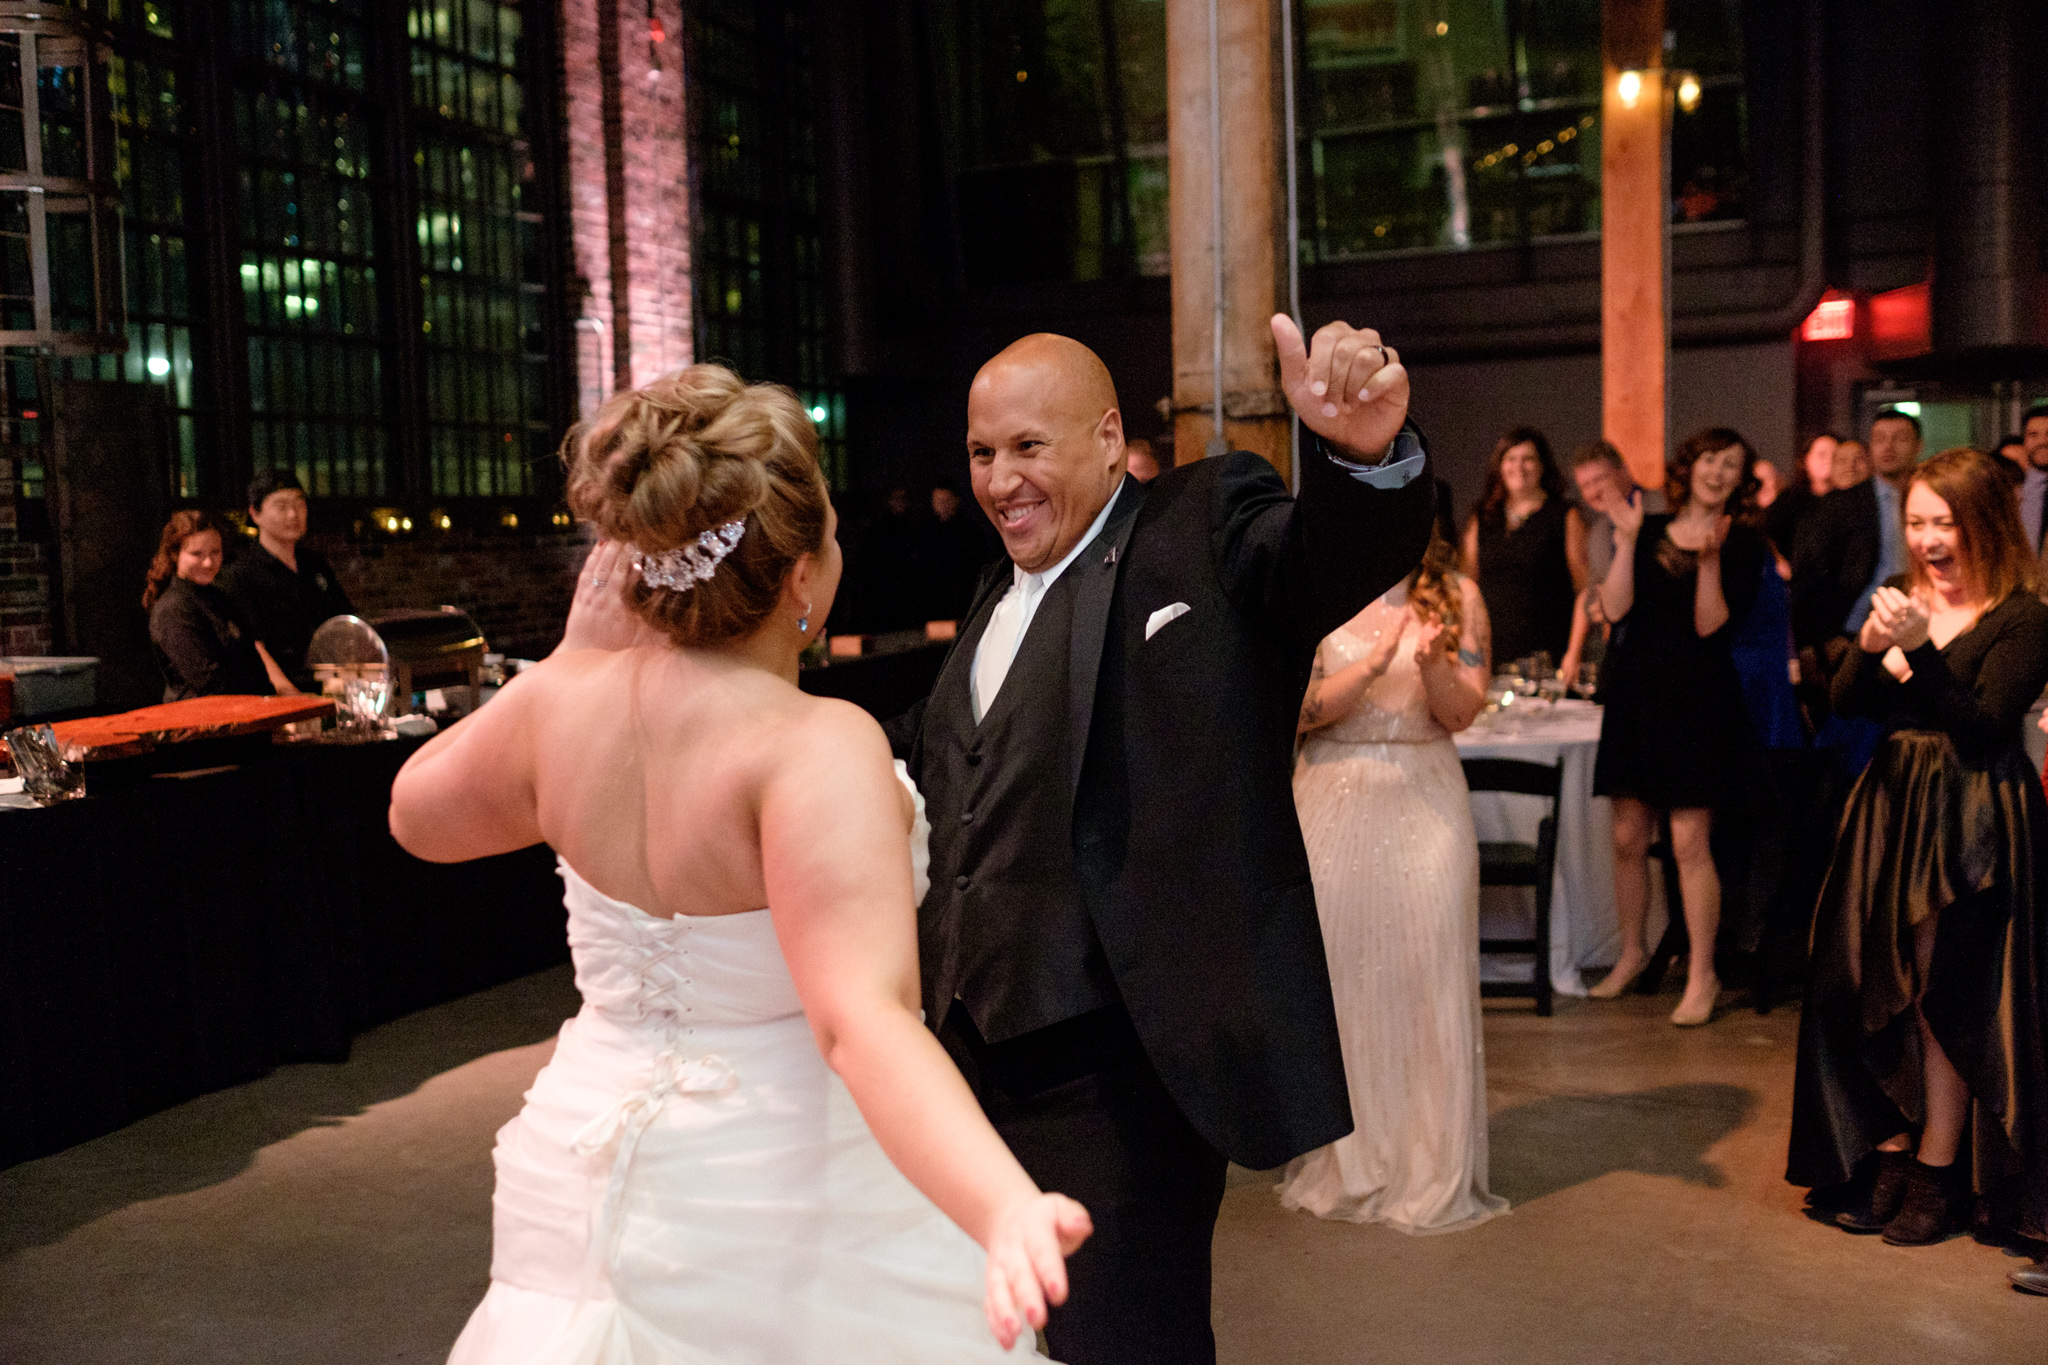 Bernie and Savannah make an entrance during their wedding reception at the Steamwhistle Brewery in Toronto.